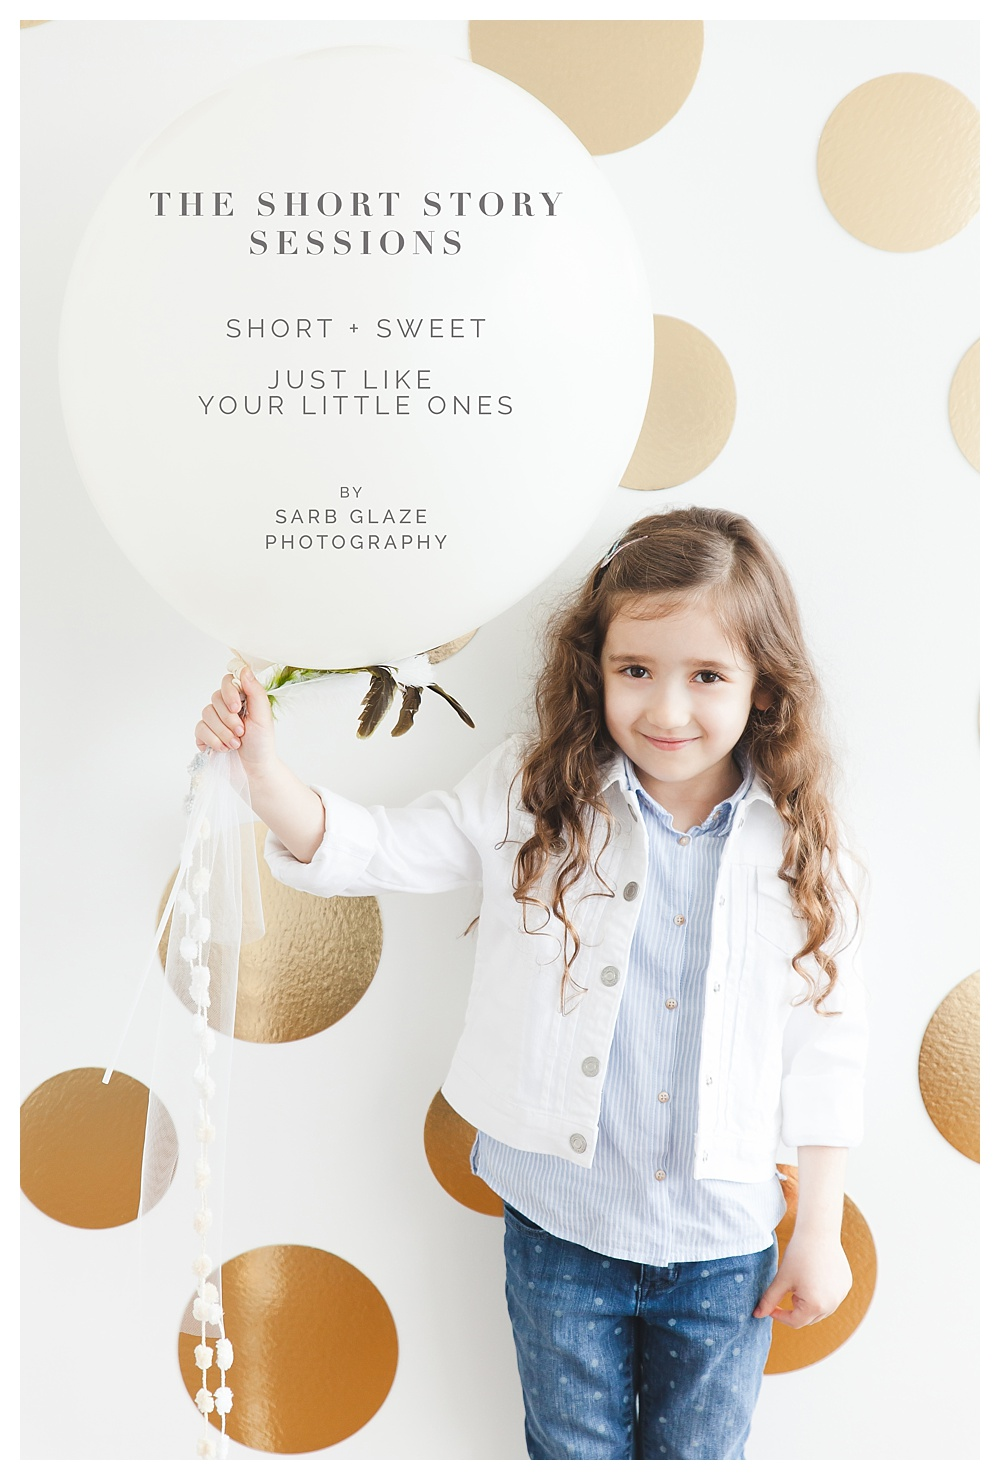 THE SHORT STORY SESSIONS | VANCOUVER CHILDREN'S PHOTOGRAPHY